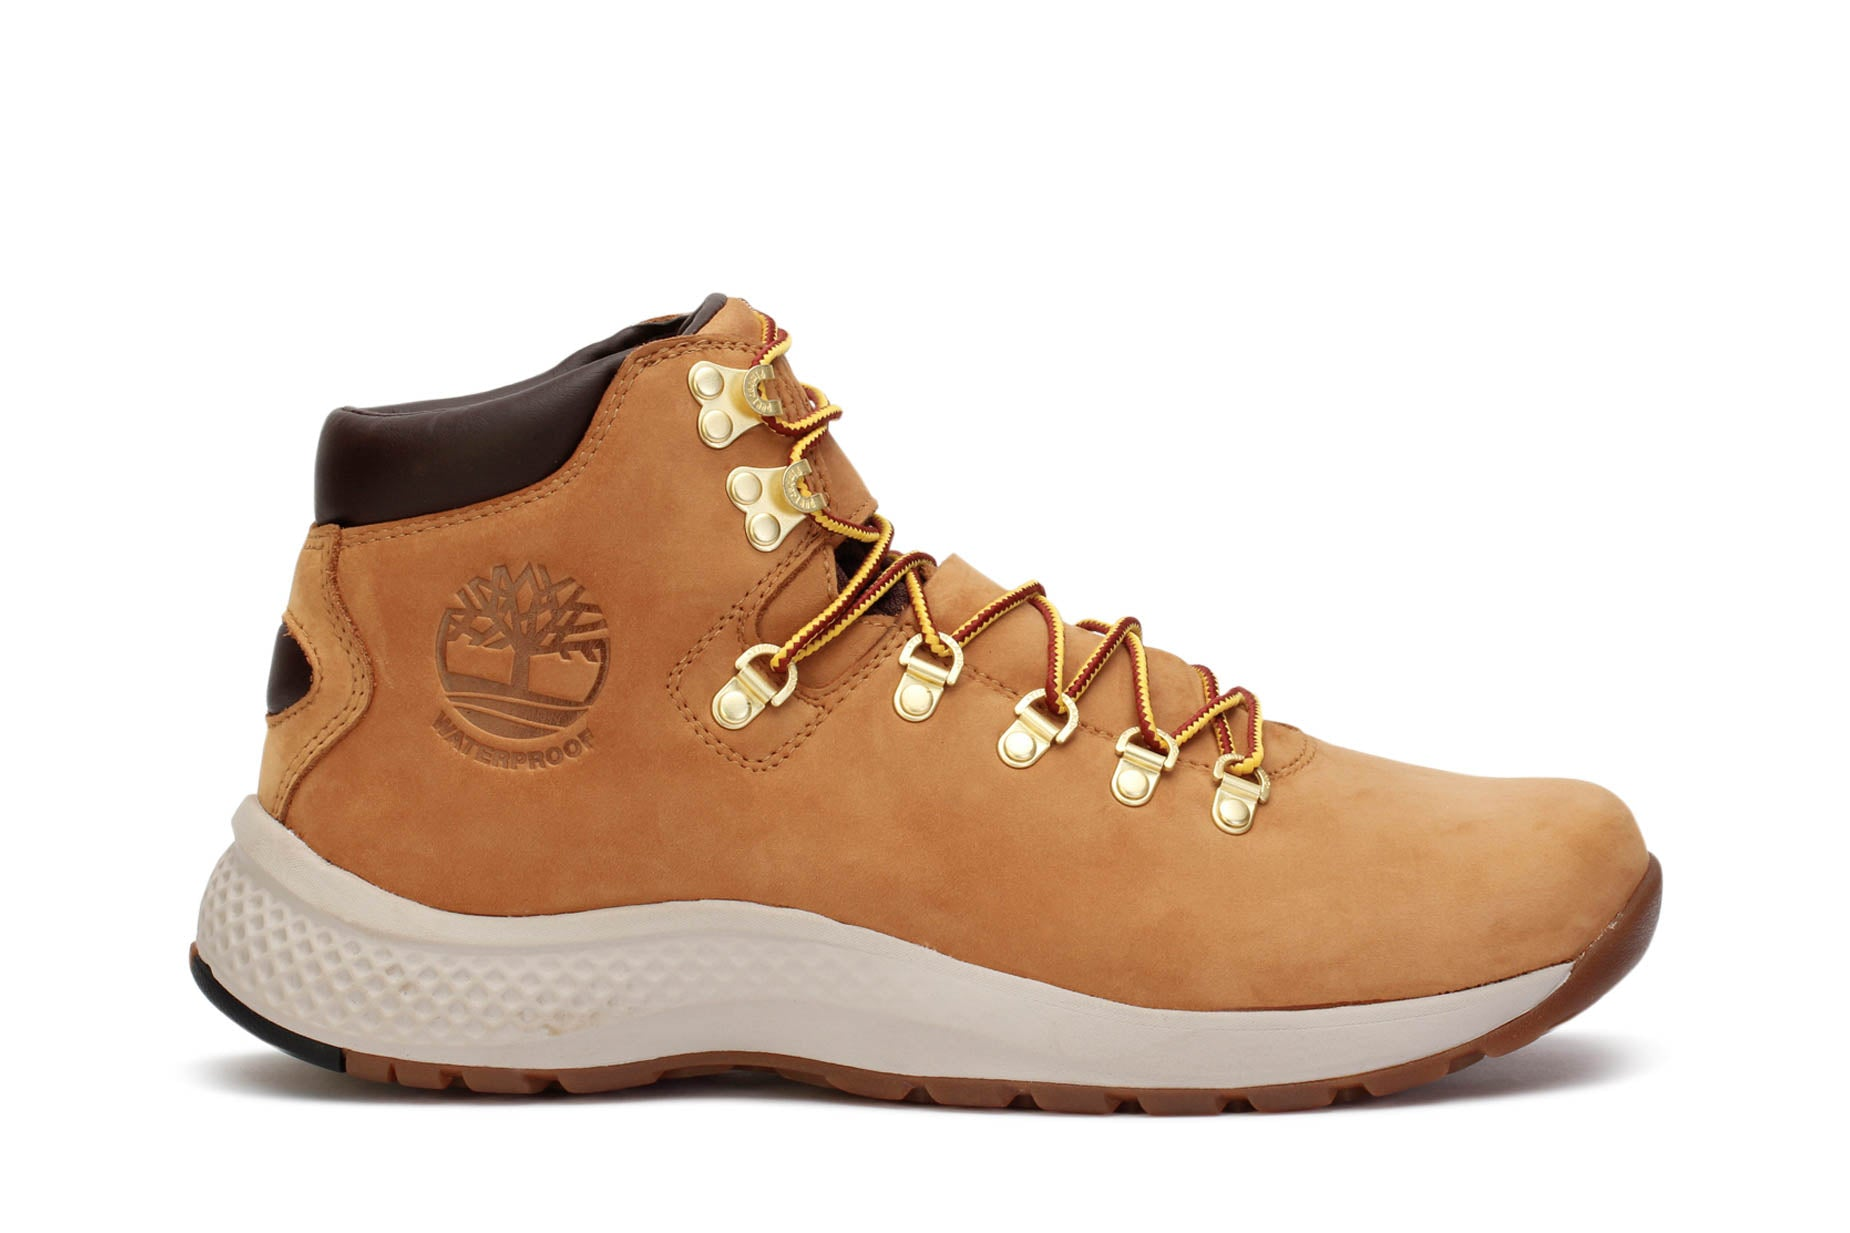 Flyroam Trail Hiker Waterproof Timberland Boots